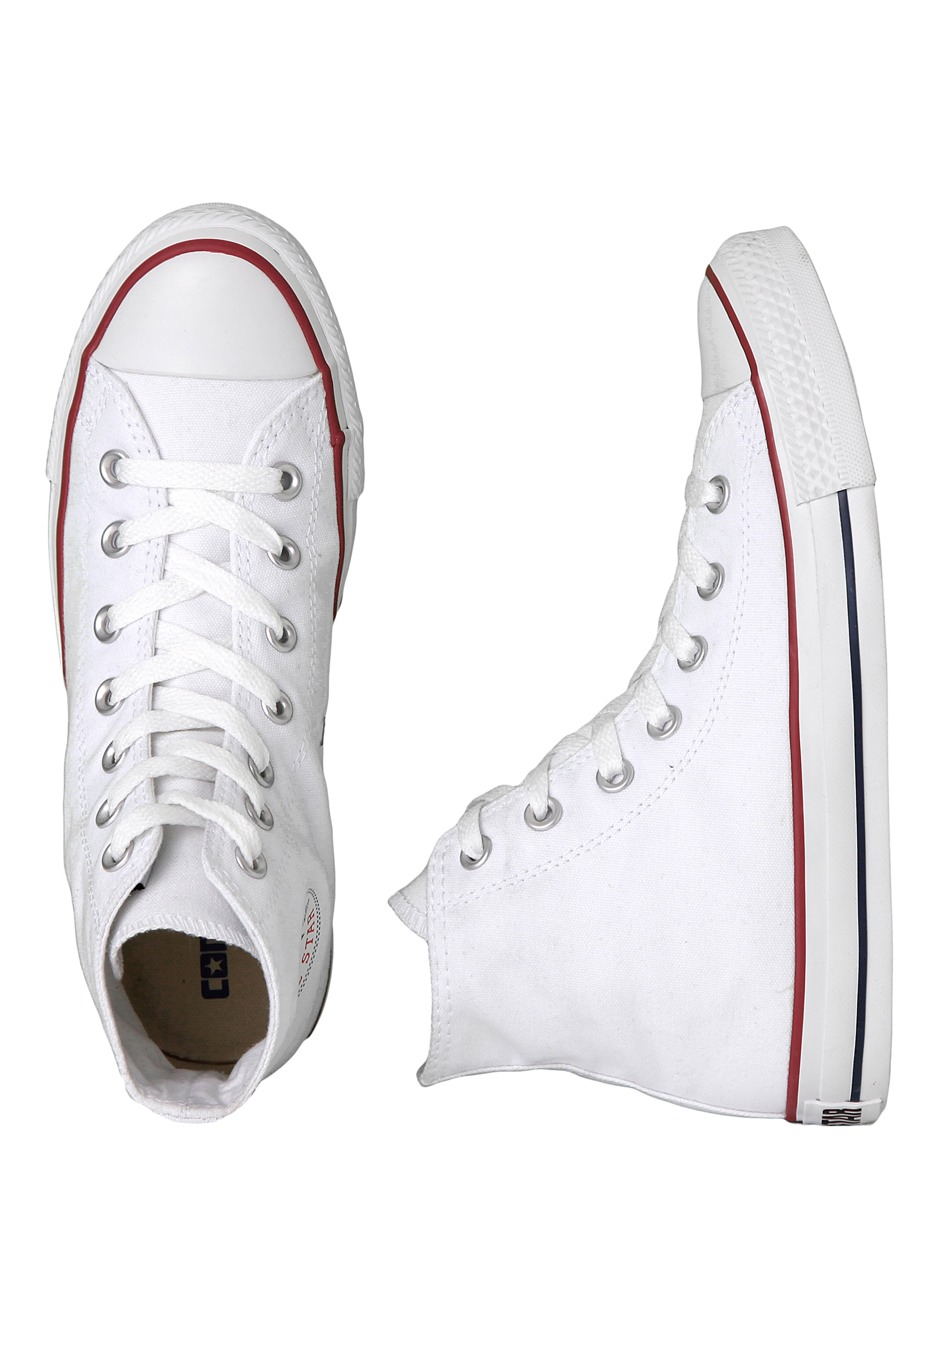 0822948672a4 Converse - Chuck Taylor All Star Hi Optical White - Girl Shoes -  Impericon.com UK